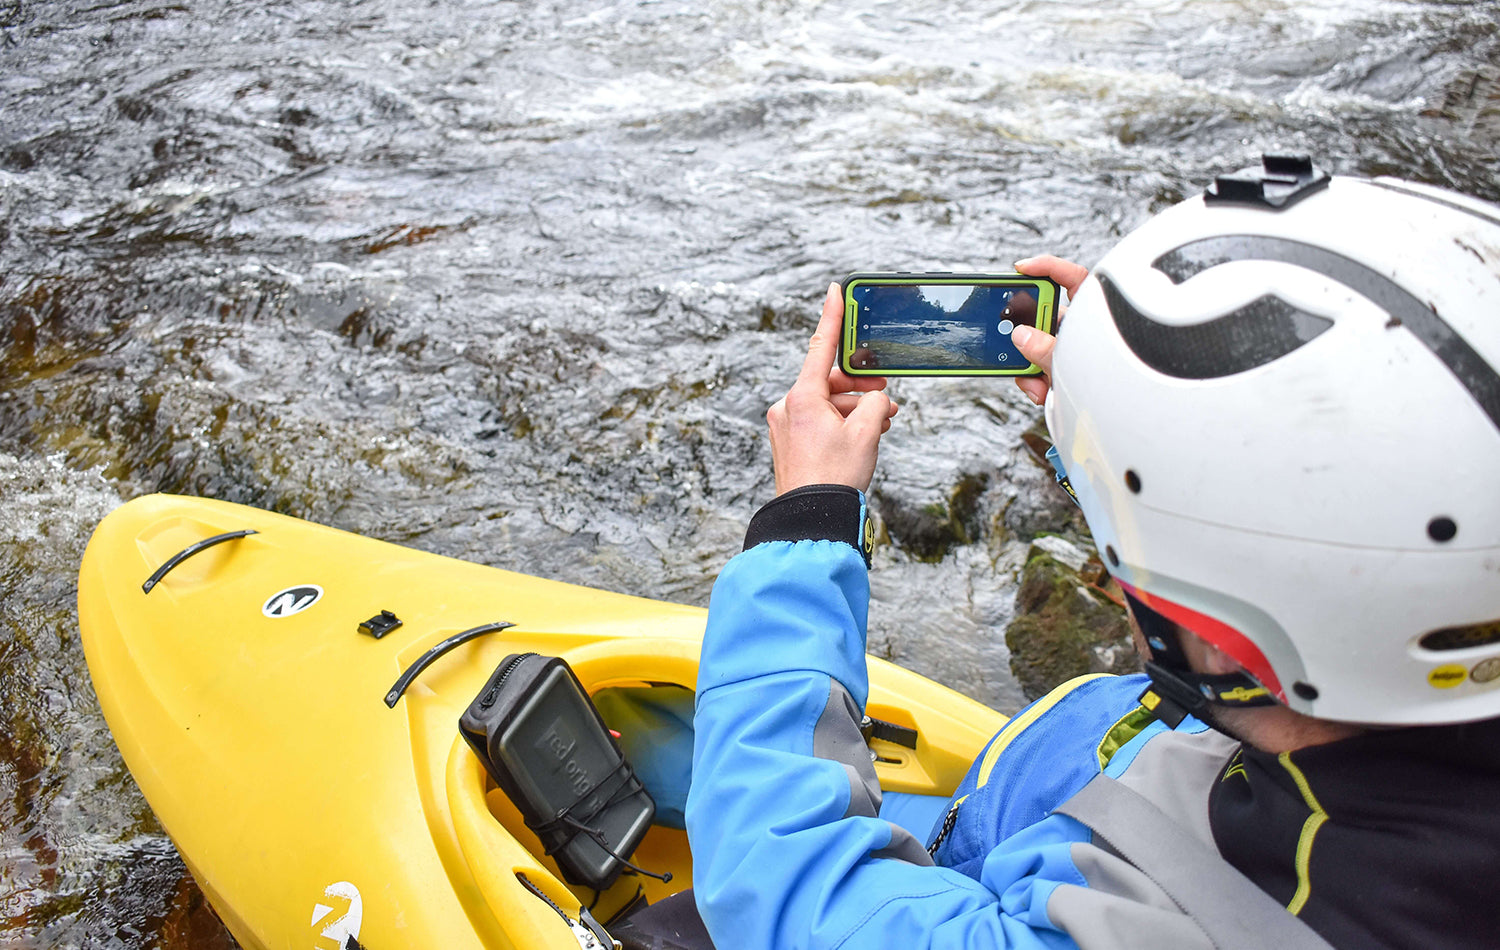 A Man Sat In His Kayak Taking A Photo With His Phone